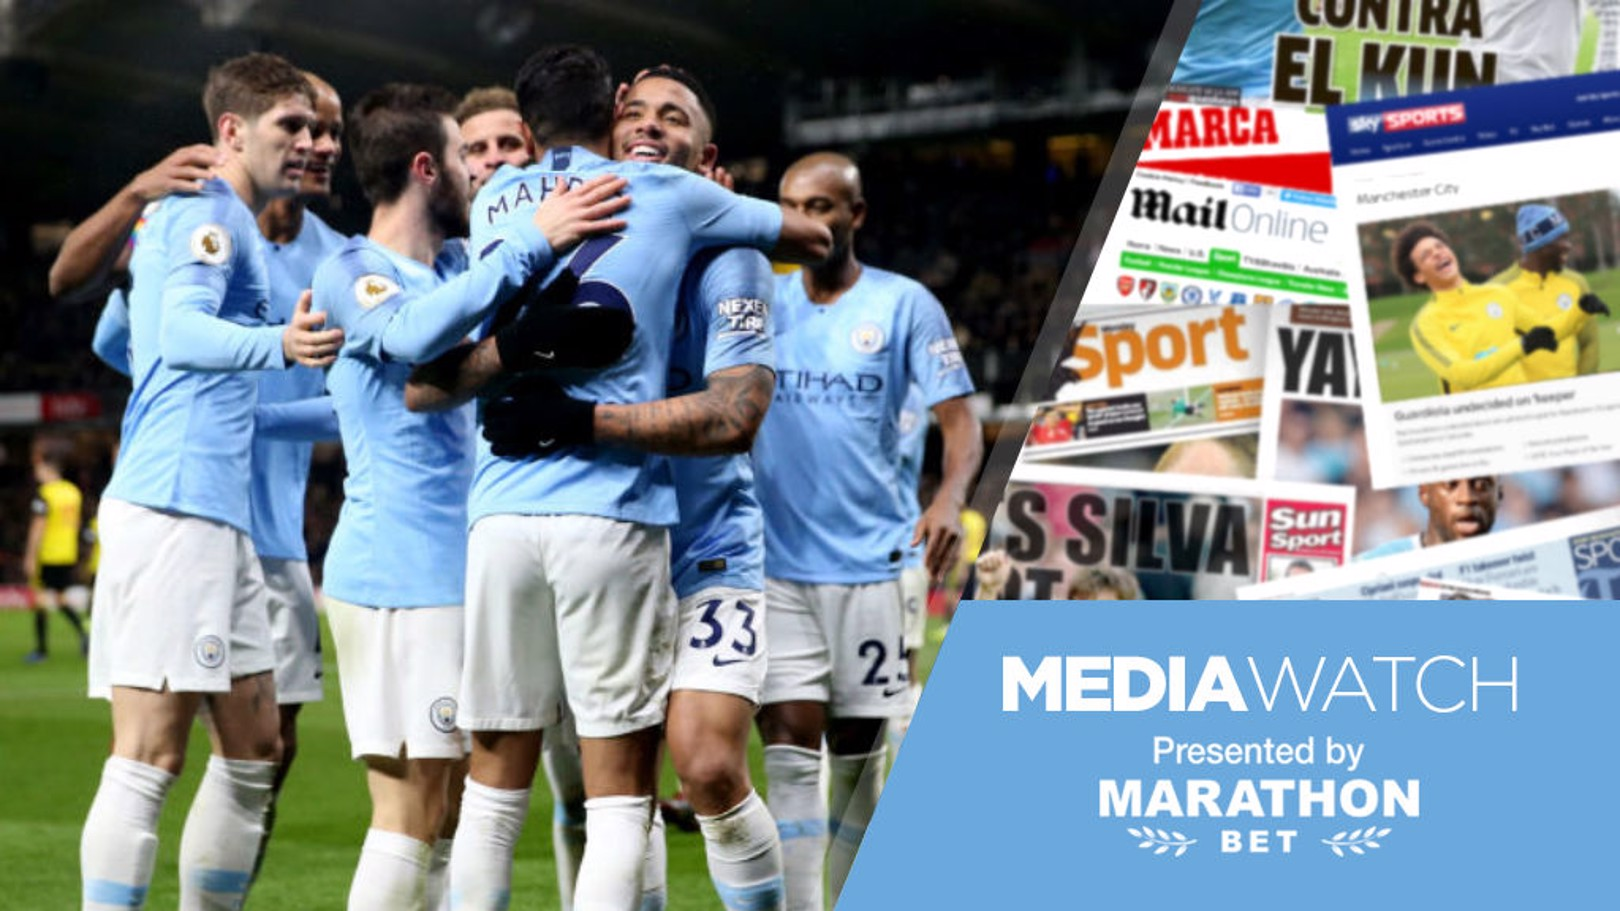 Media Watch: 'City can be the new Invincibles'